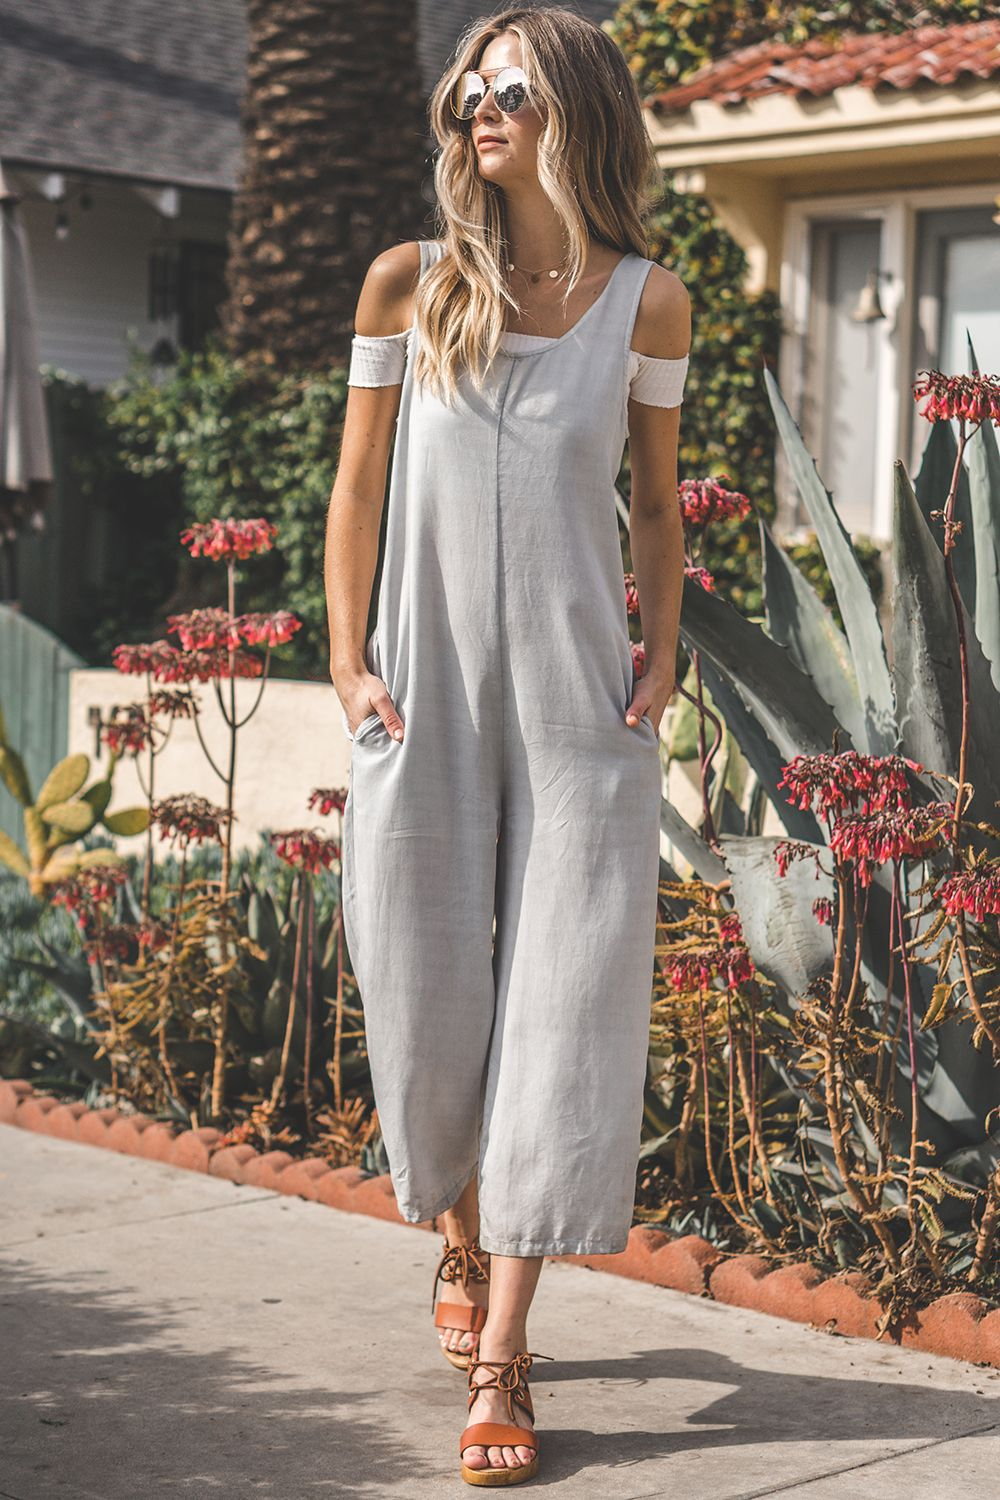 c3c6ba93a47 Brand new jumpsuit from our Spring 2018 Lookbook